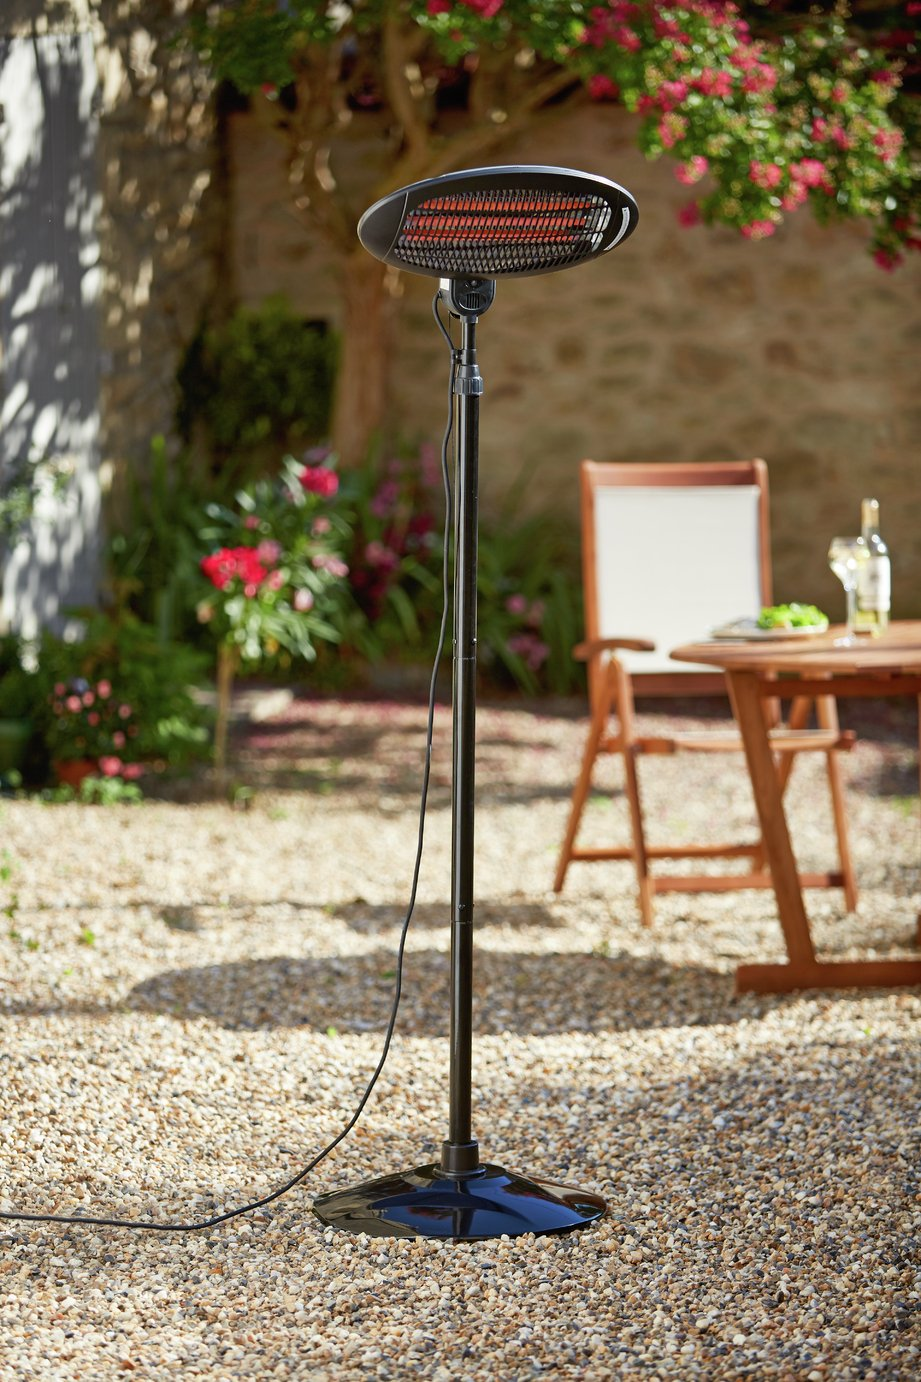 Outdoor Electric Patio Heater Reviews: Electric Patio Heater. Review